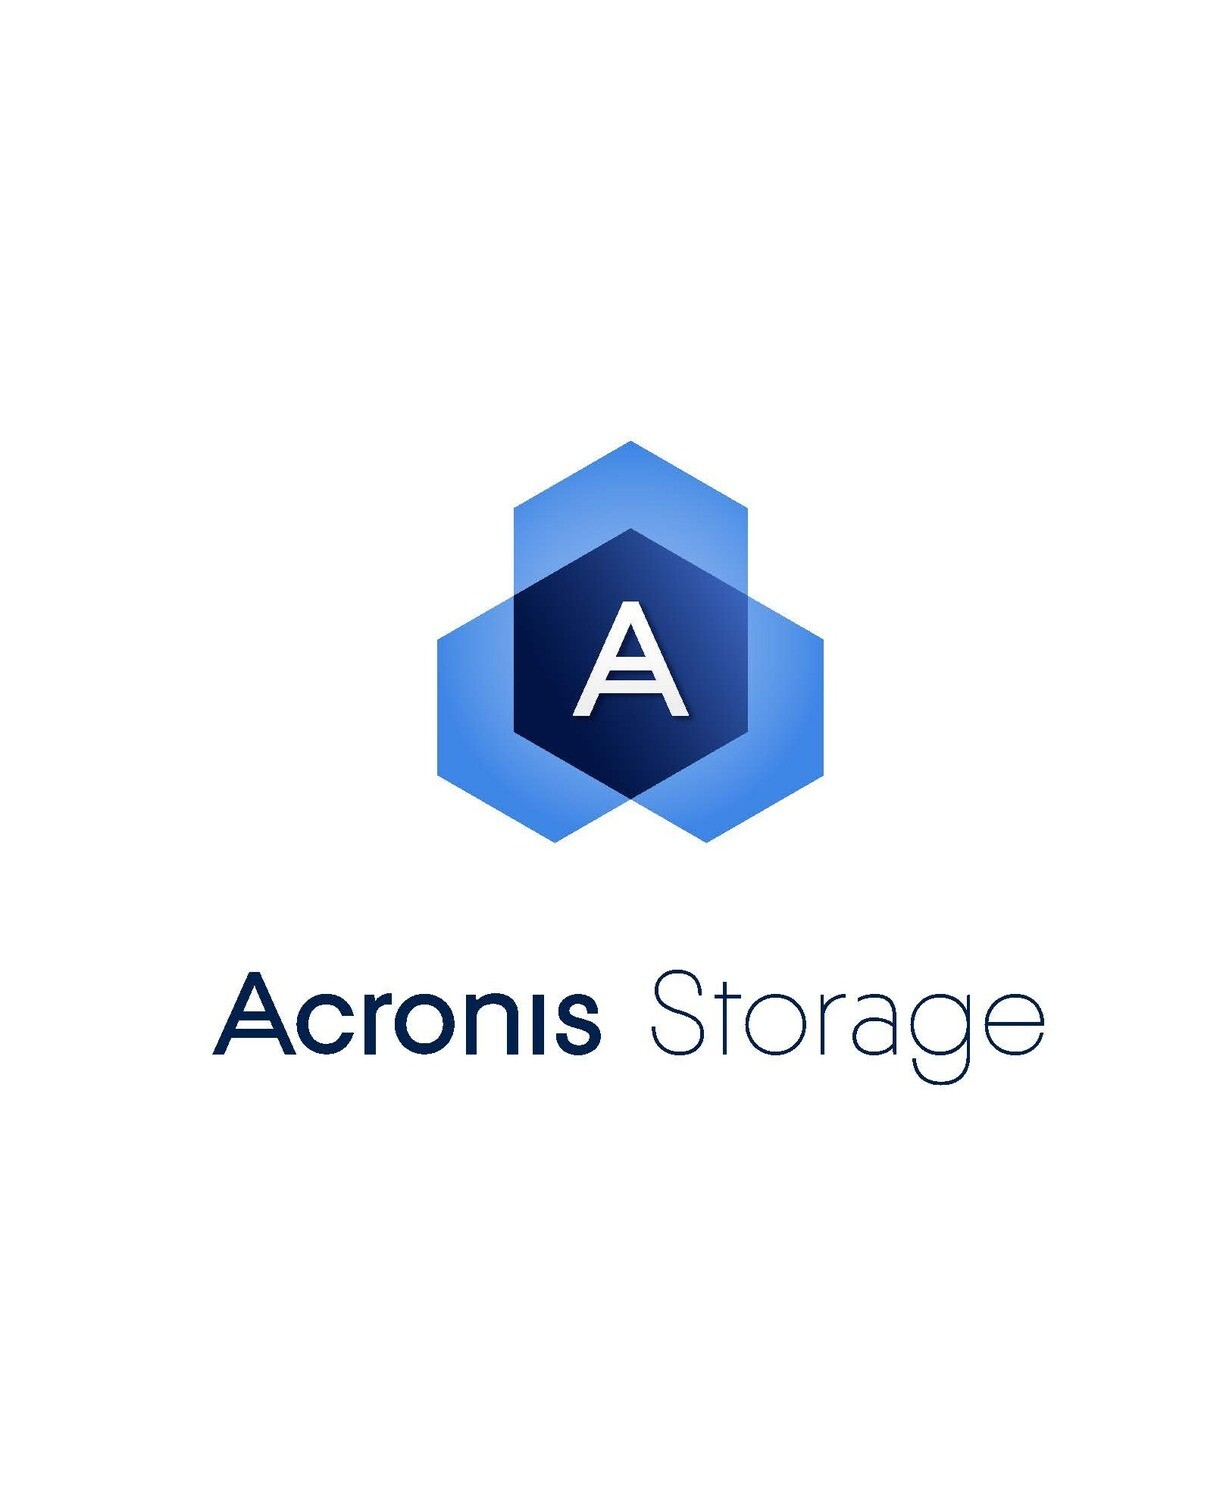 Acronis Storage - Acronis Cyber Infrastructure Subscription